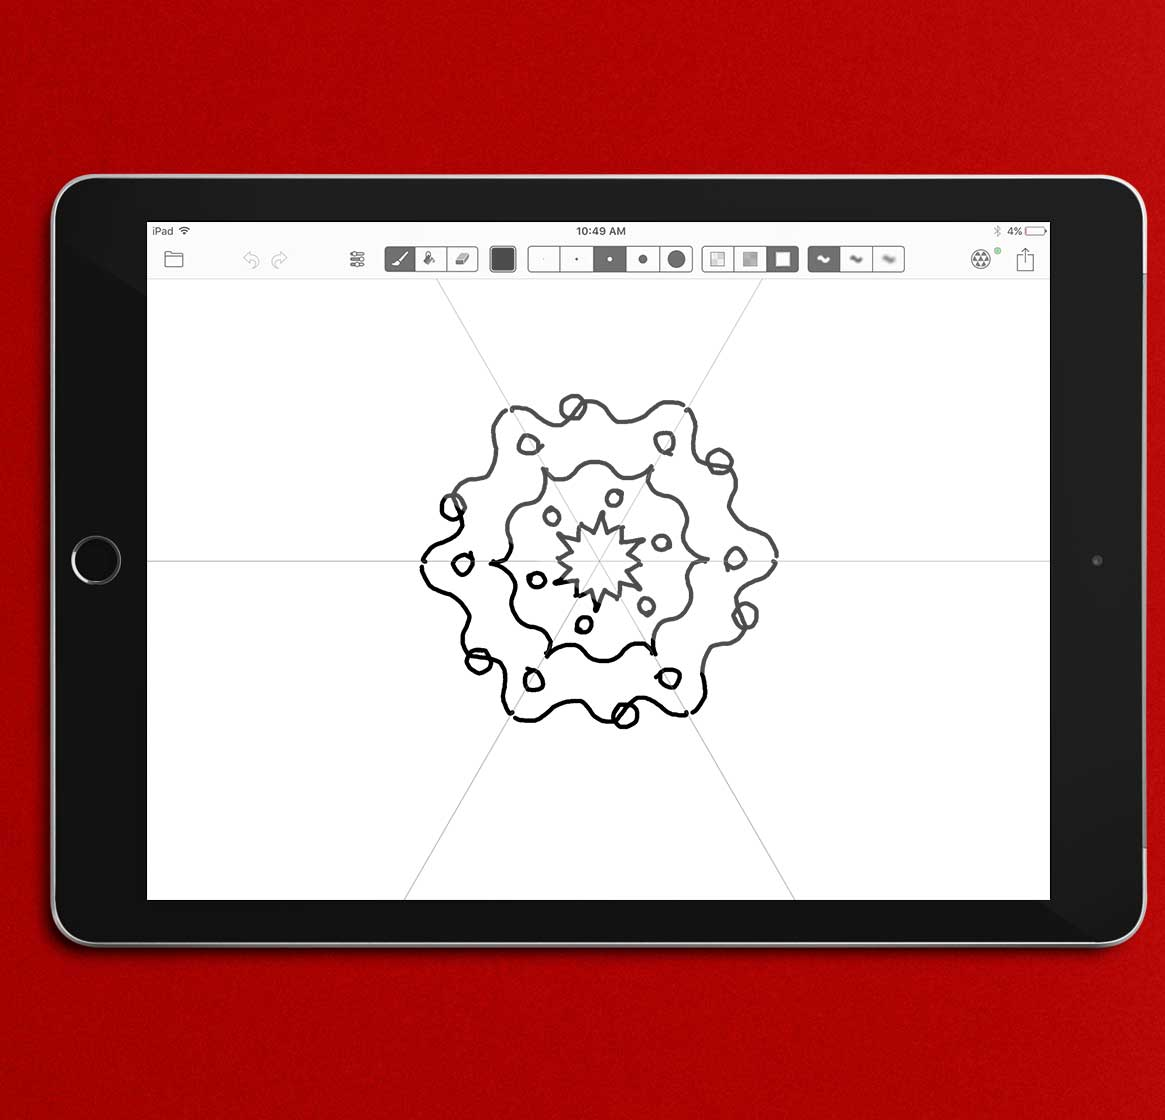 An iPad sitting on a red background displaying a circular pattern on its screen